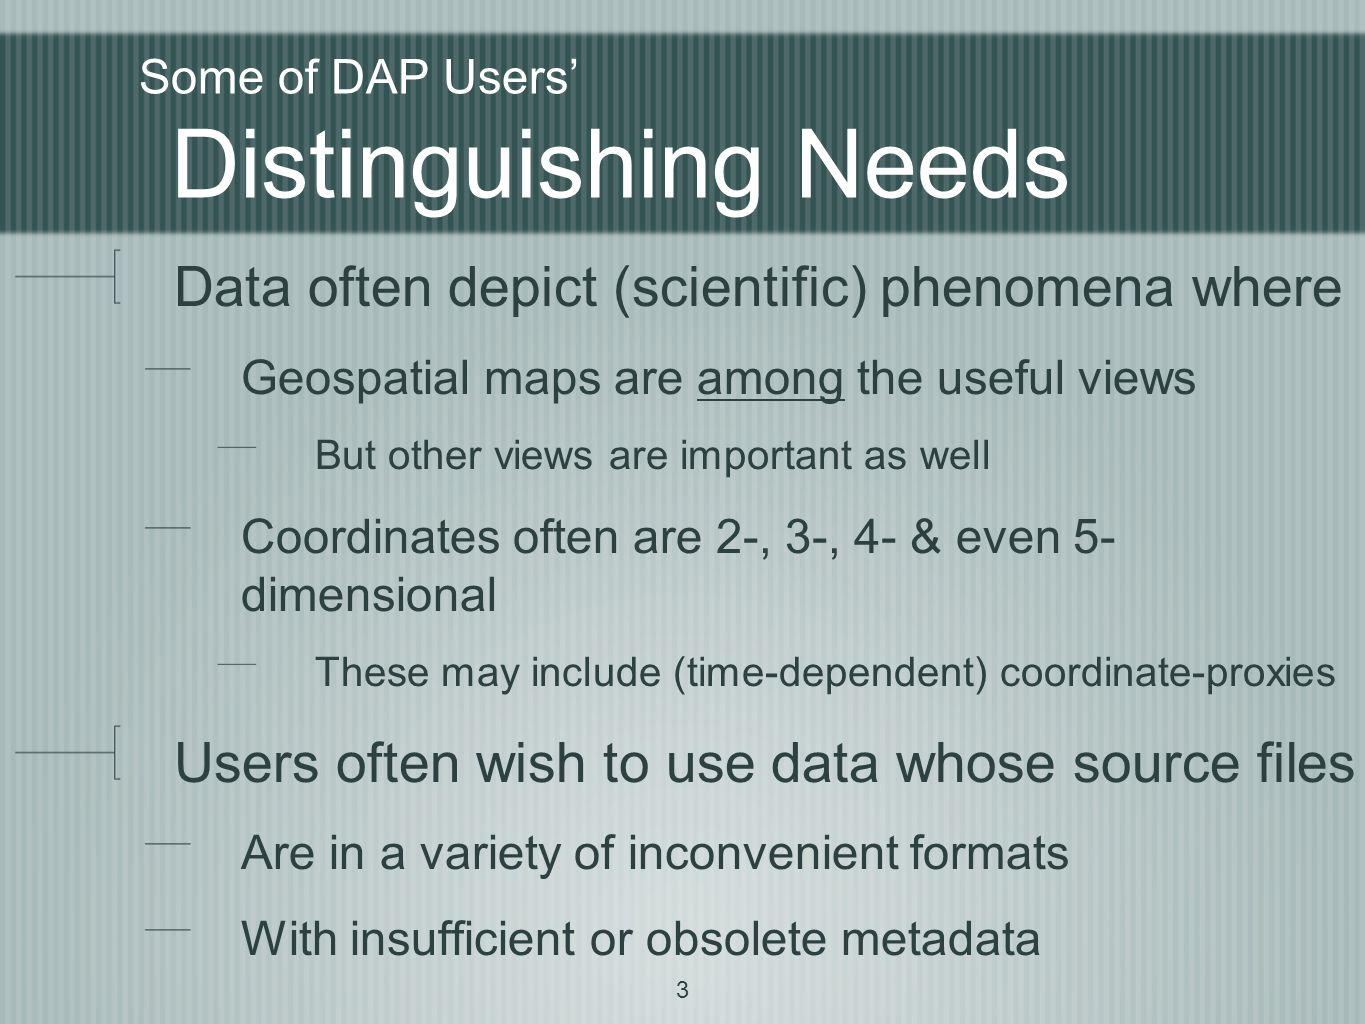 3 Some of DAP Users' Distinguishing Needs Data often depict (scientific) phenomena where Geospatial maps are among the useful views But other views are important as well Coordinates often are 2-, 3-, 4- & even 5- dimensional These may include (time-dependent) coordinate-proxies Users often wish to use data whose source files Are in a variety of inconvenient formats With insufficient or obsolete metadata